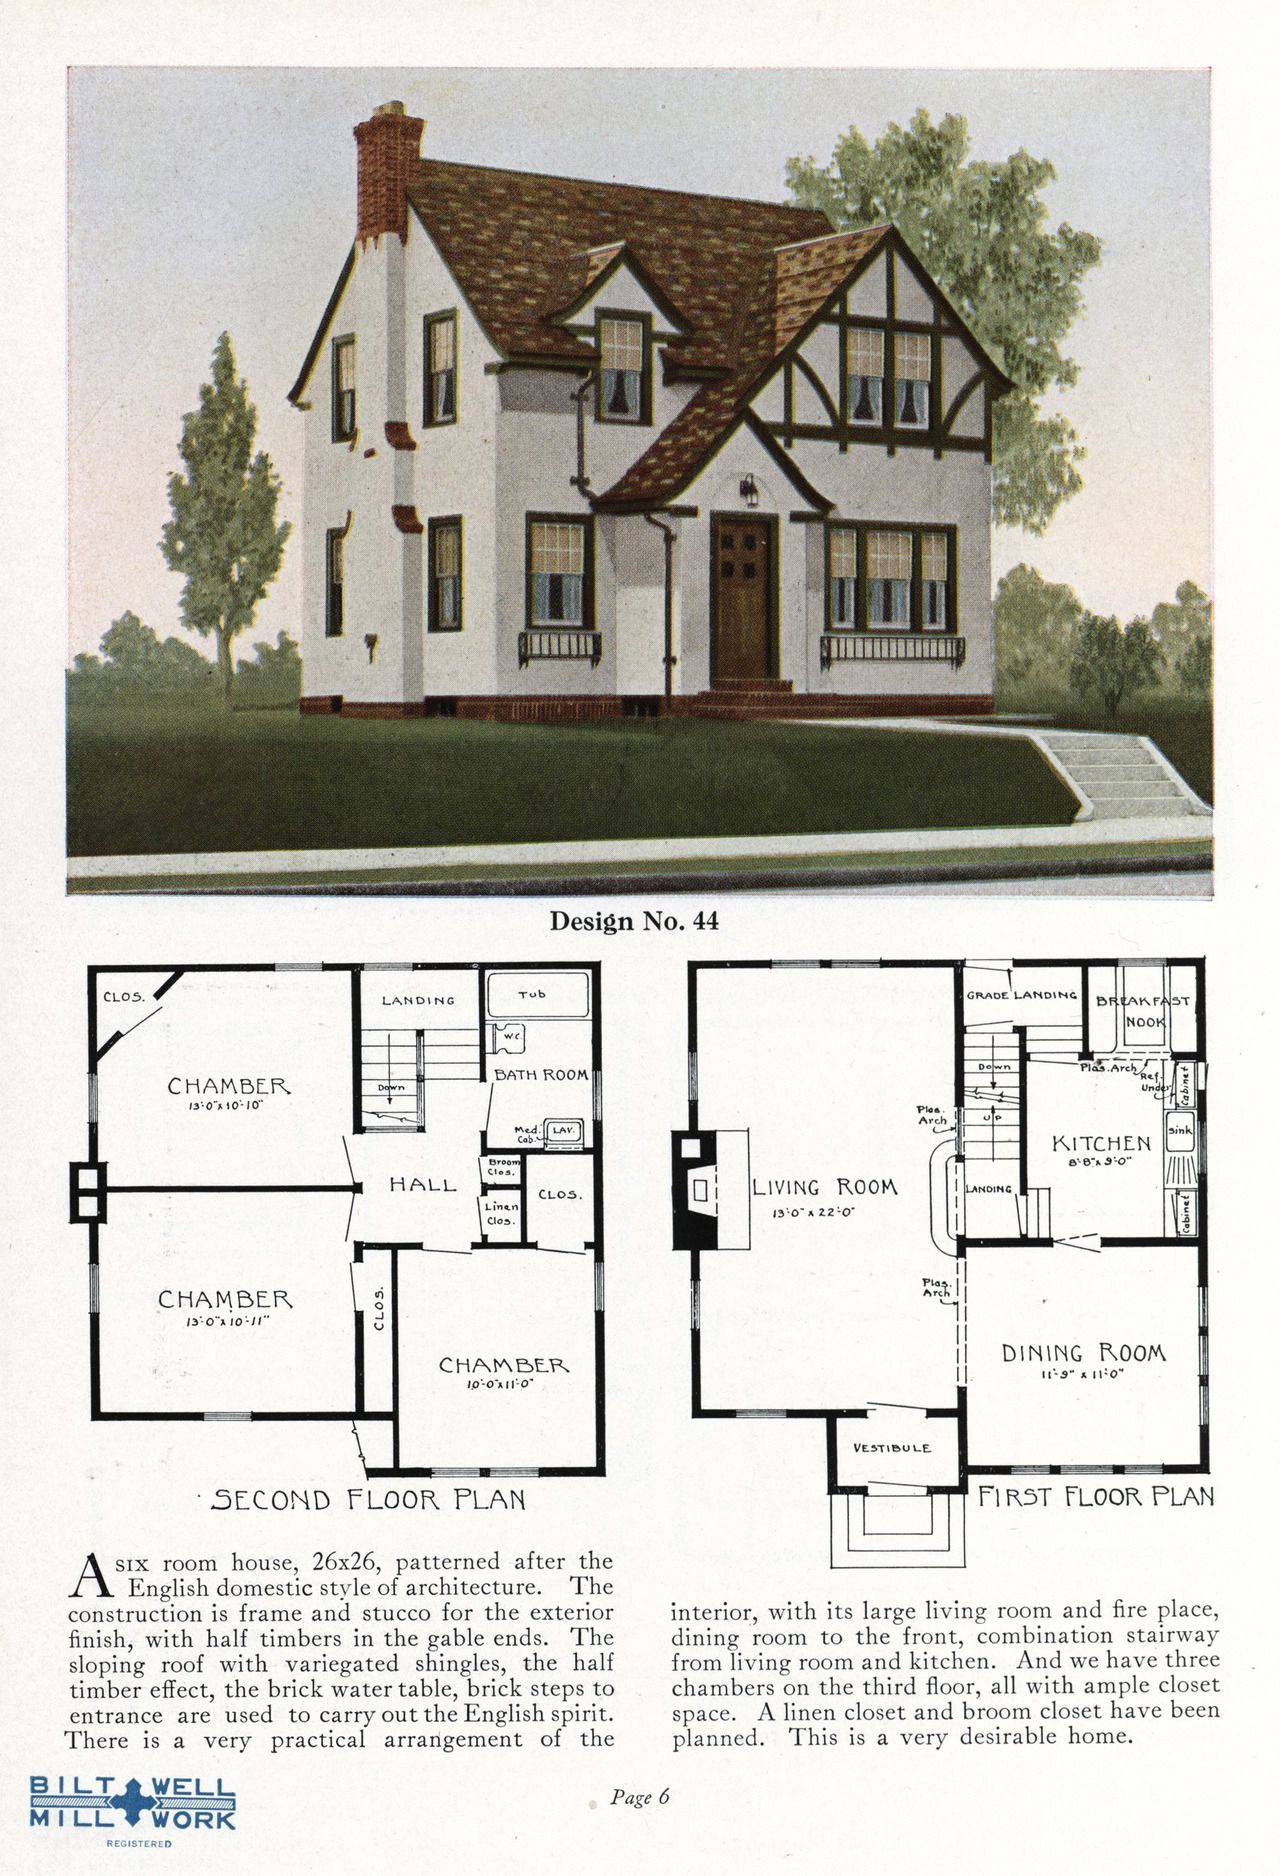 Pin By Misty Gorley On House Plans House Plans House Blueprints American Style House